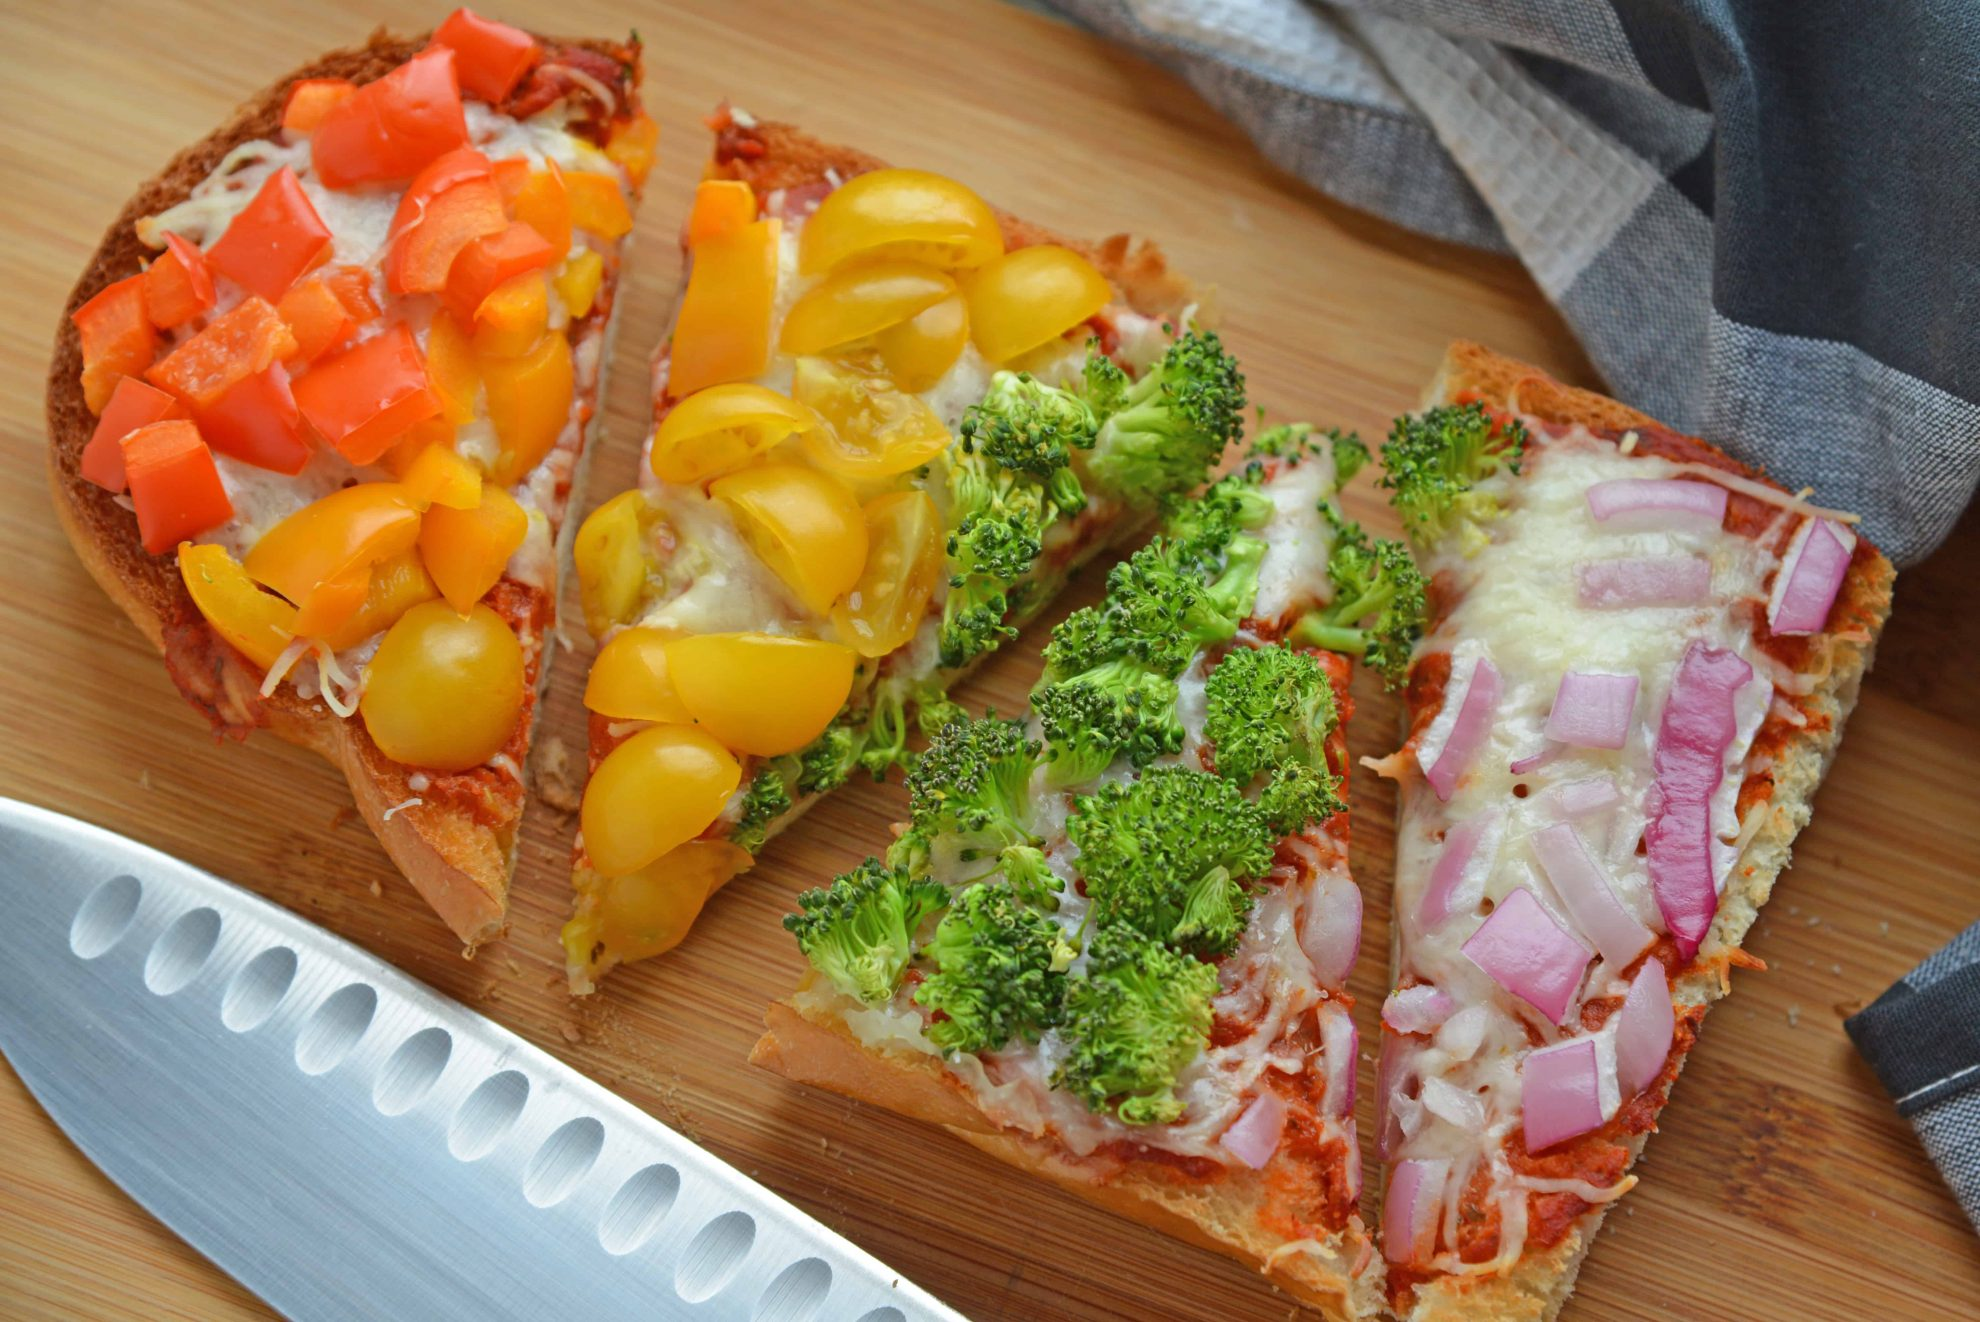 Rainbow Pizza Cut into pieces